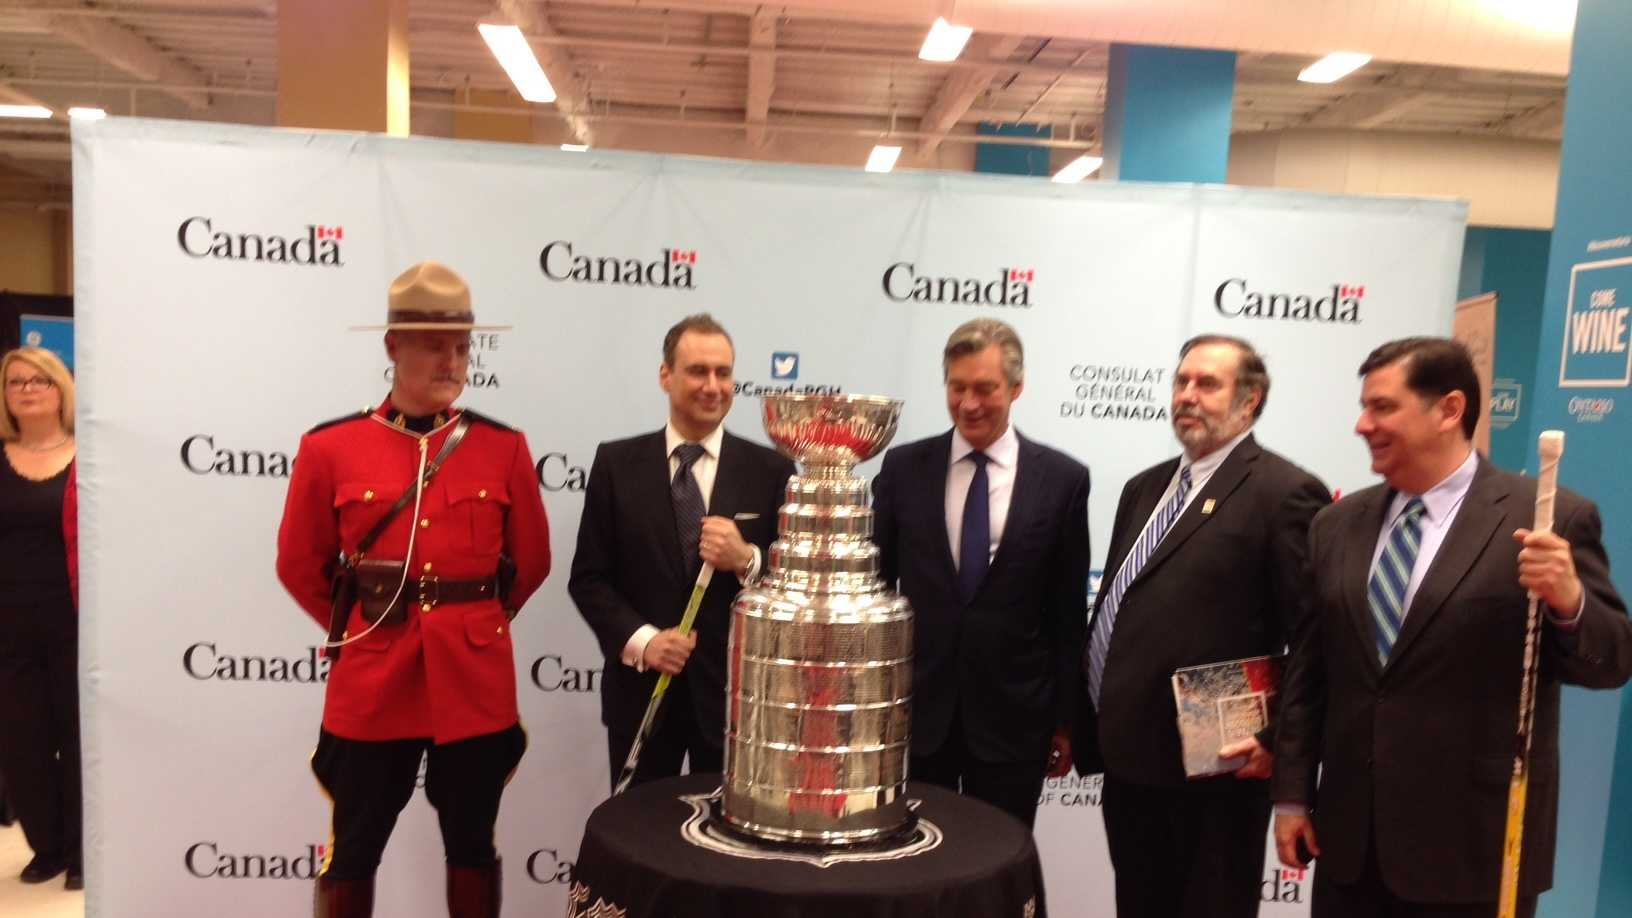 Stanley Cup at Pop-Up Canada!